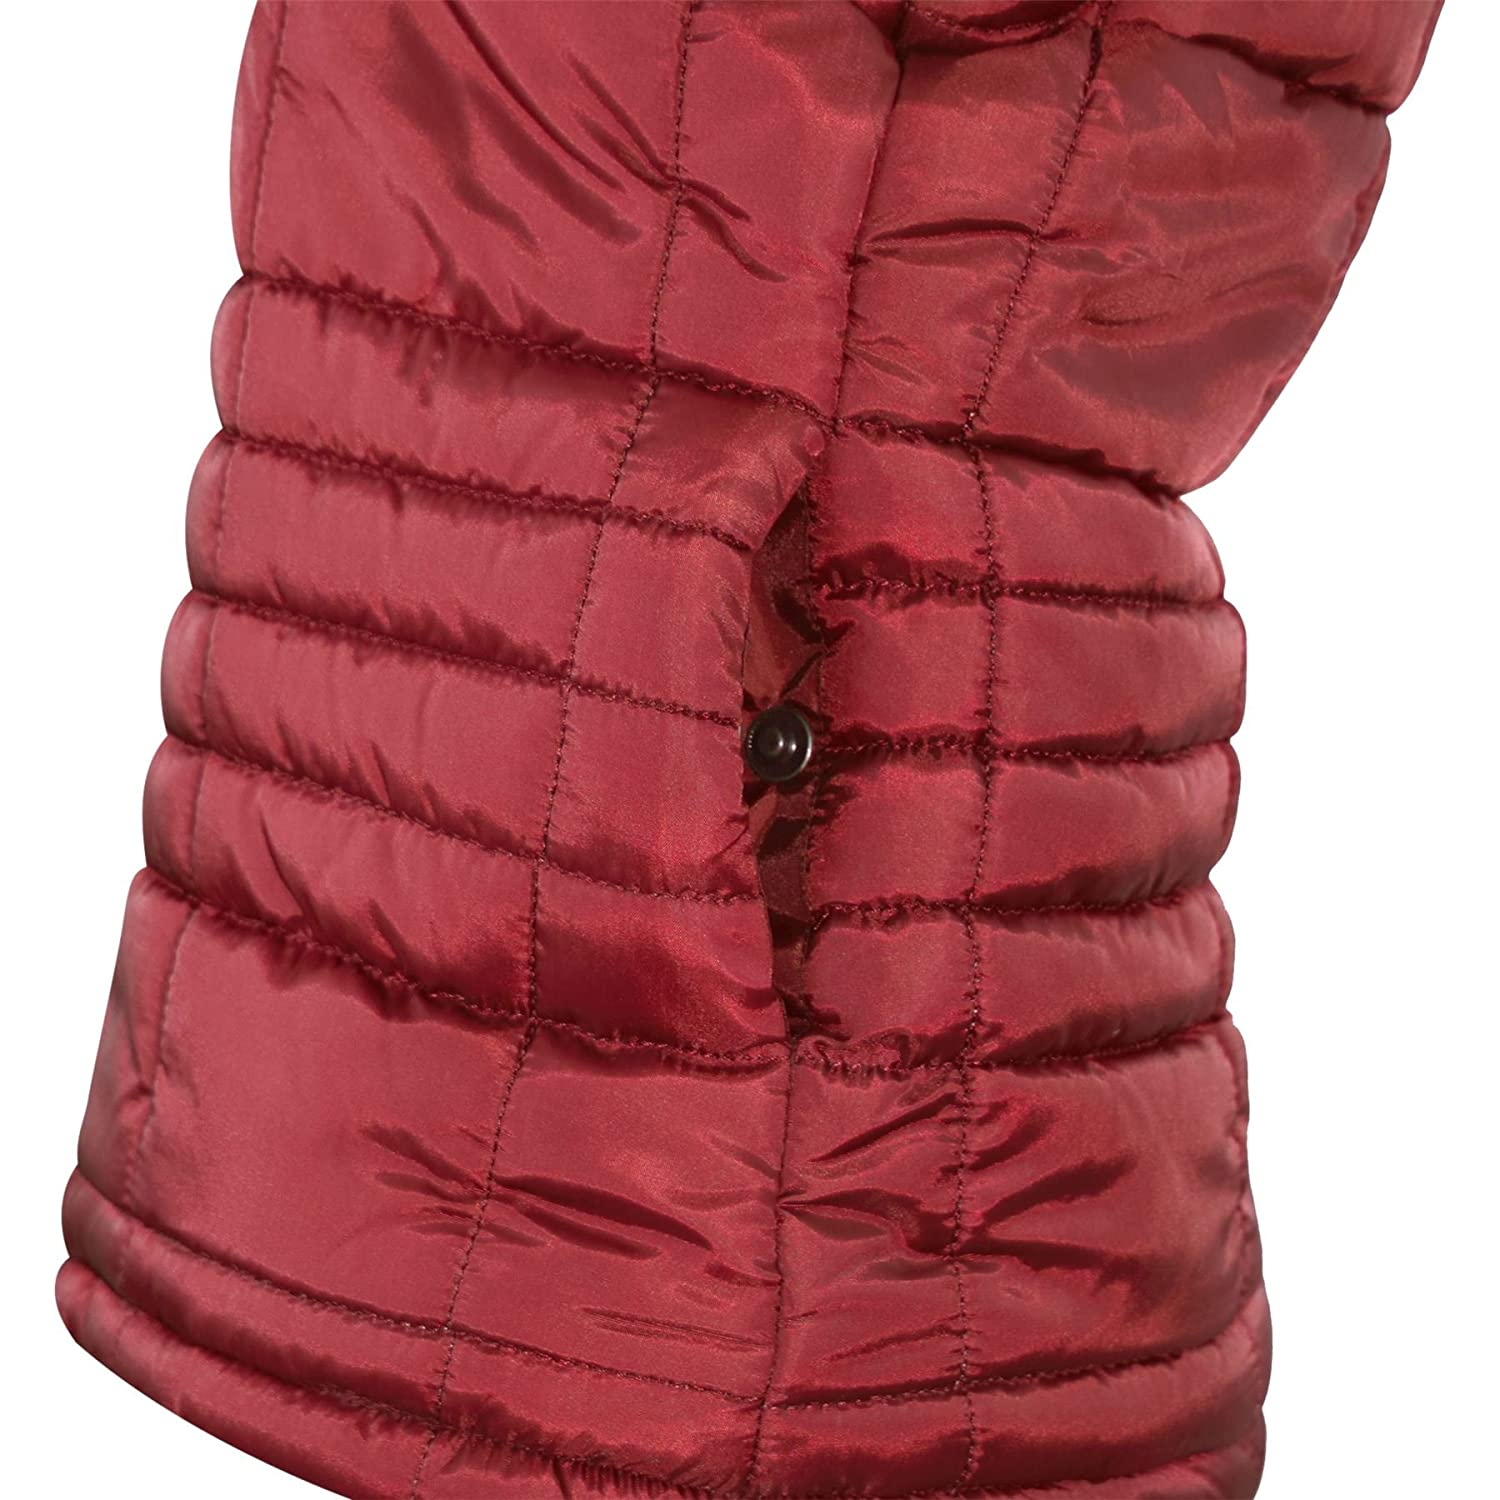 A2Z 4 Kids/® Kids Girls Boys Designers Wine Sleeveless Hooded Padded Quilted Lined Gilet Bodywarmer Fashion Jackets Age 5 6 7 8 9 10 11 12 13 Years